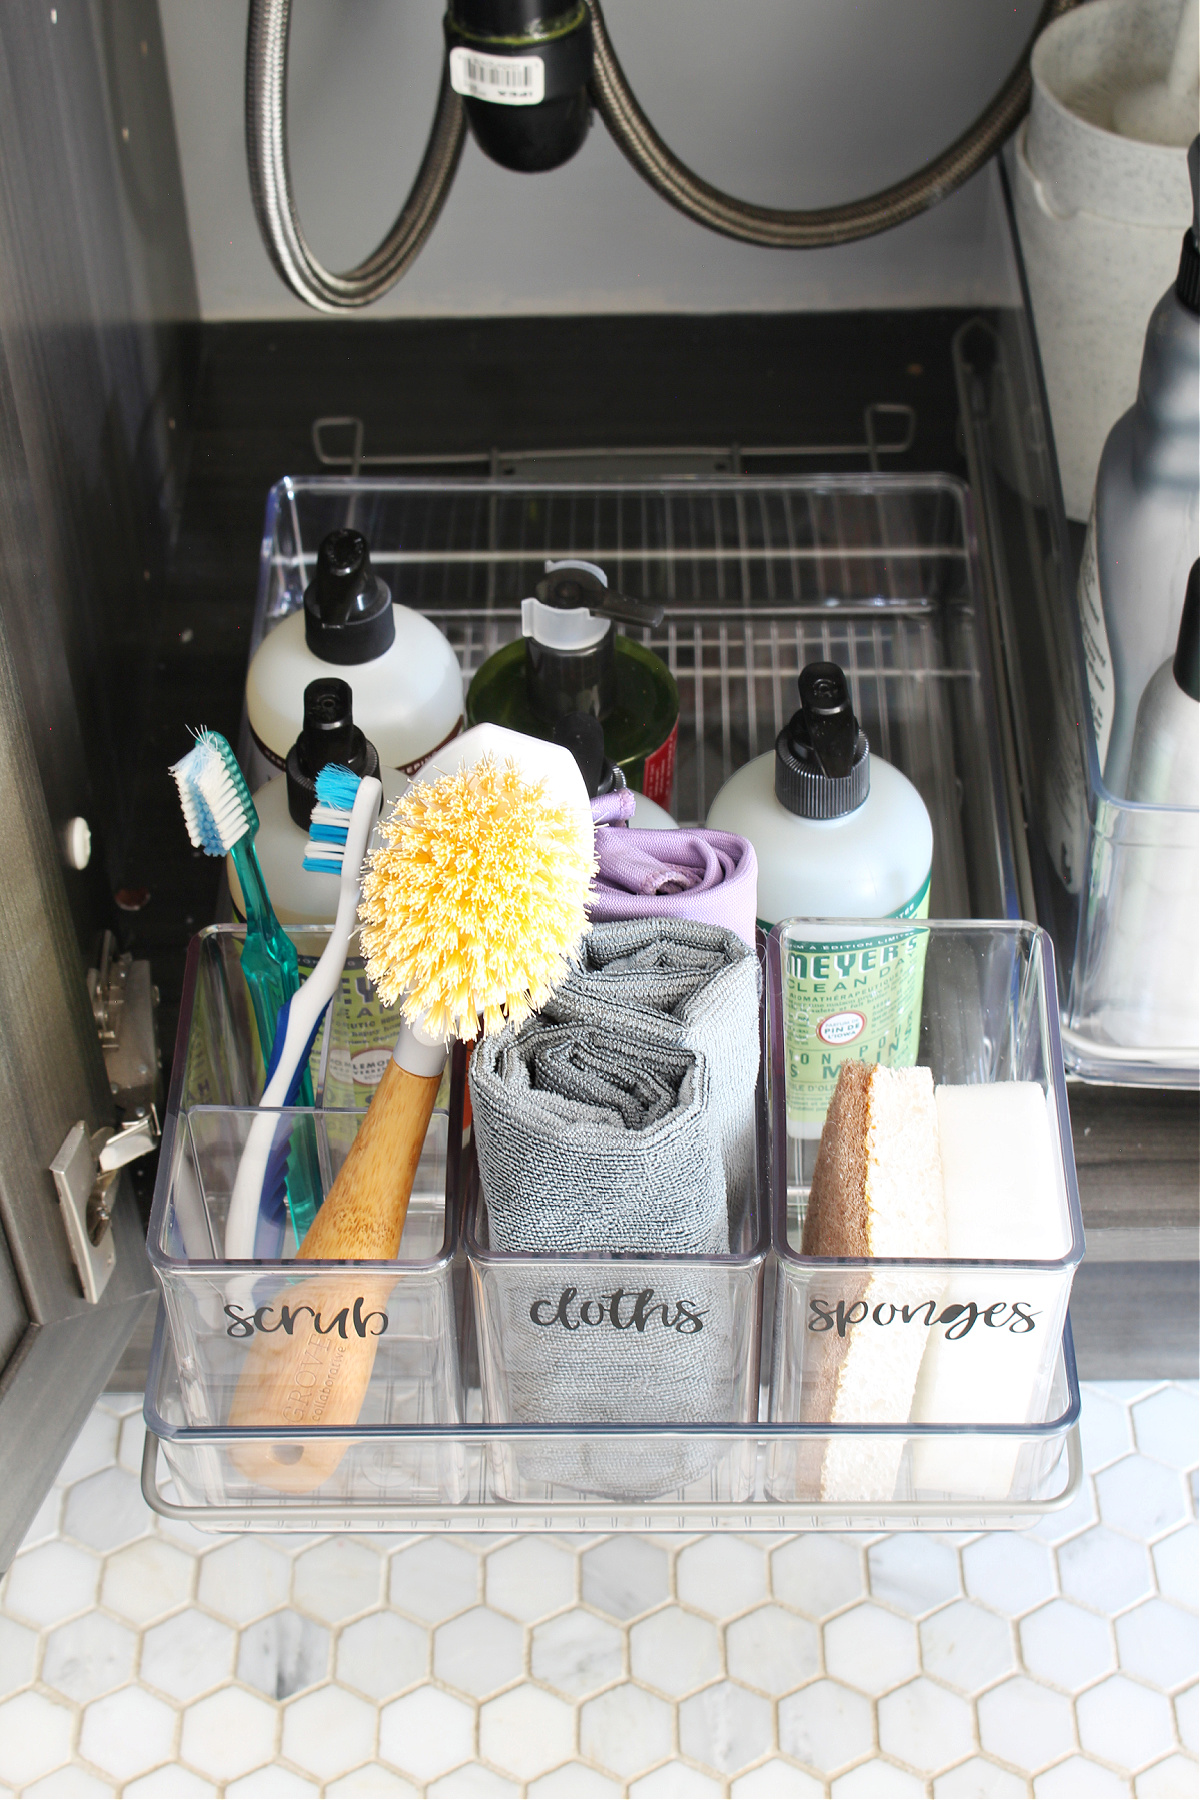 Bathroom cleaning products in a pull-out acrylic tray.